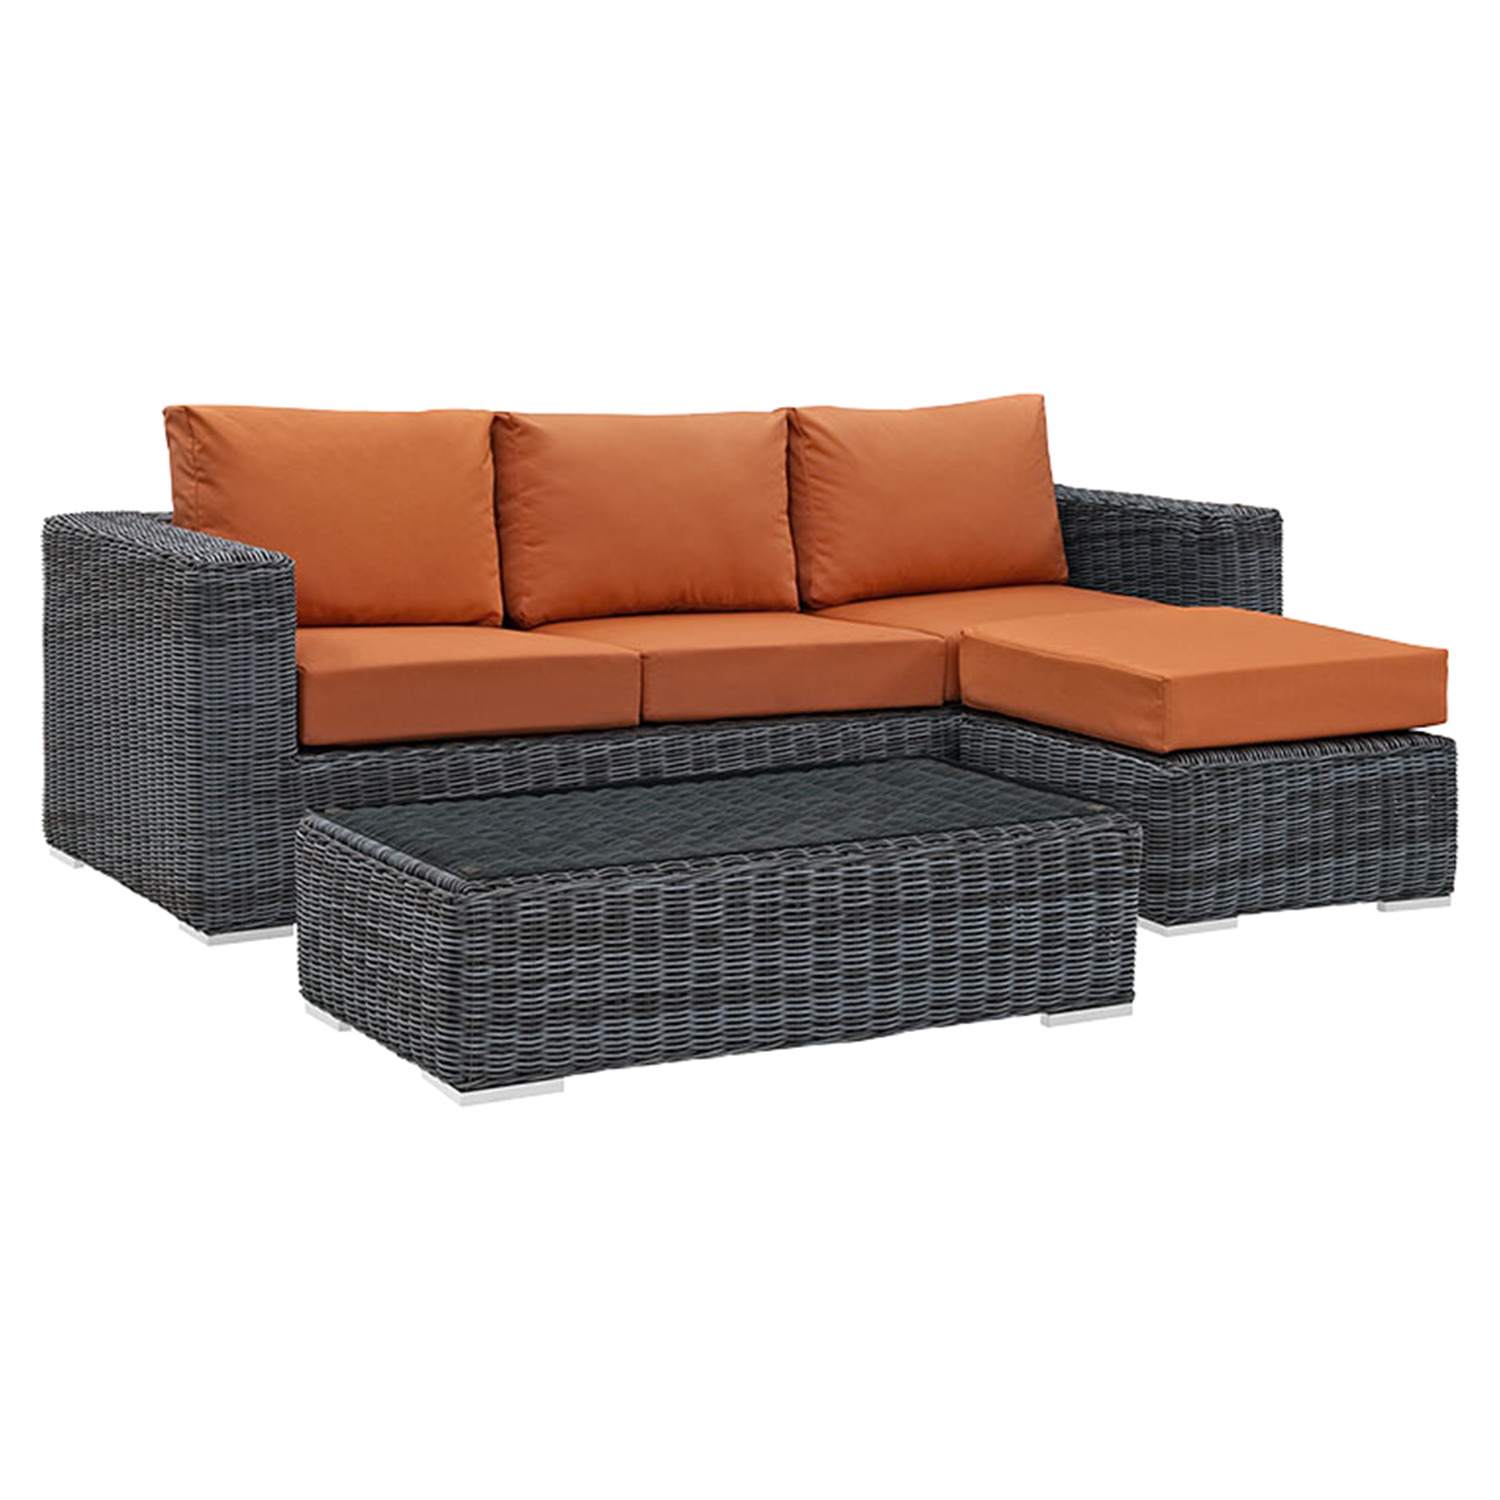 Summon 3 Pieces Outdoor Patio Sectional Set - Sunbrella Canvas Tuscan - EEI-1903-GRY-TUS-SET